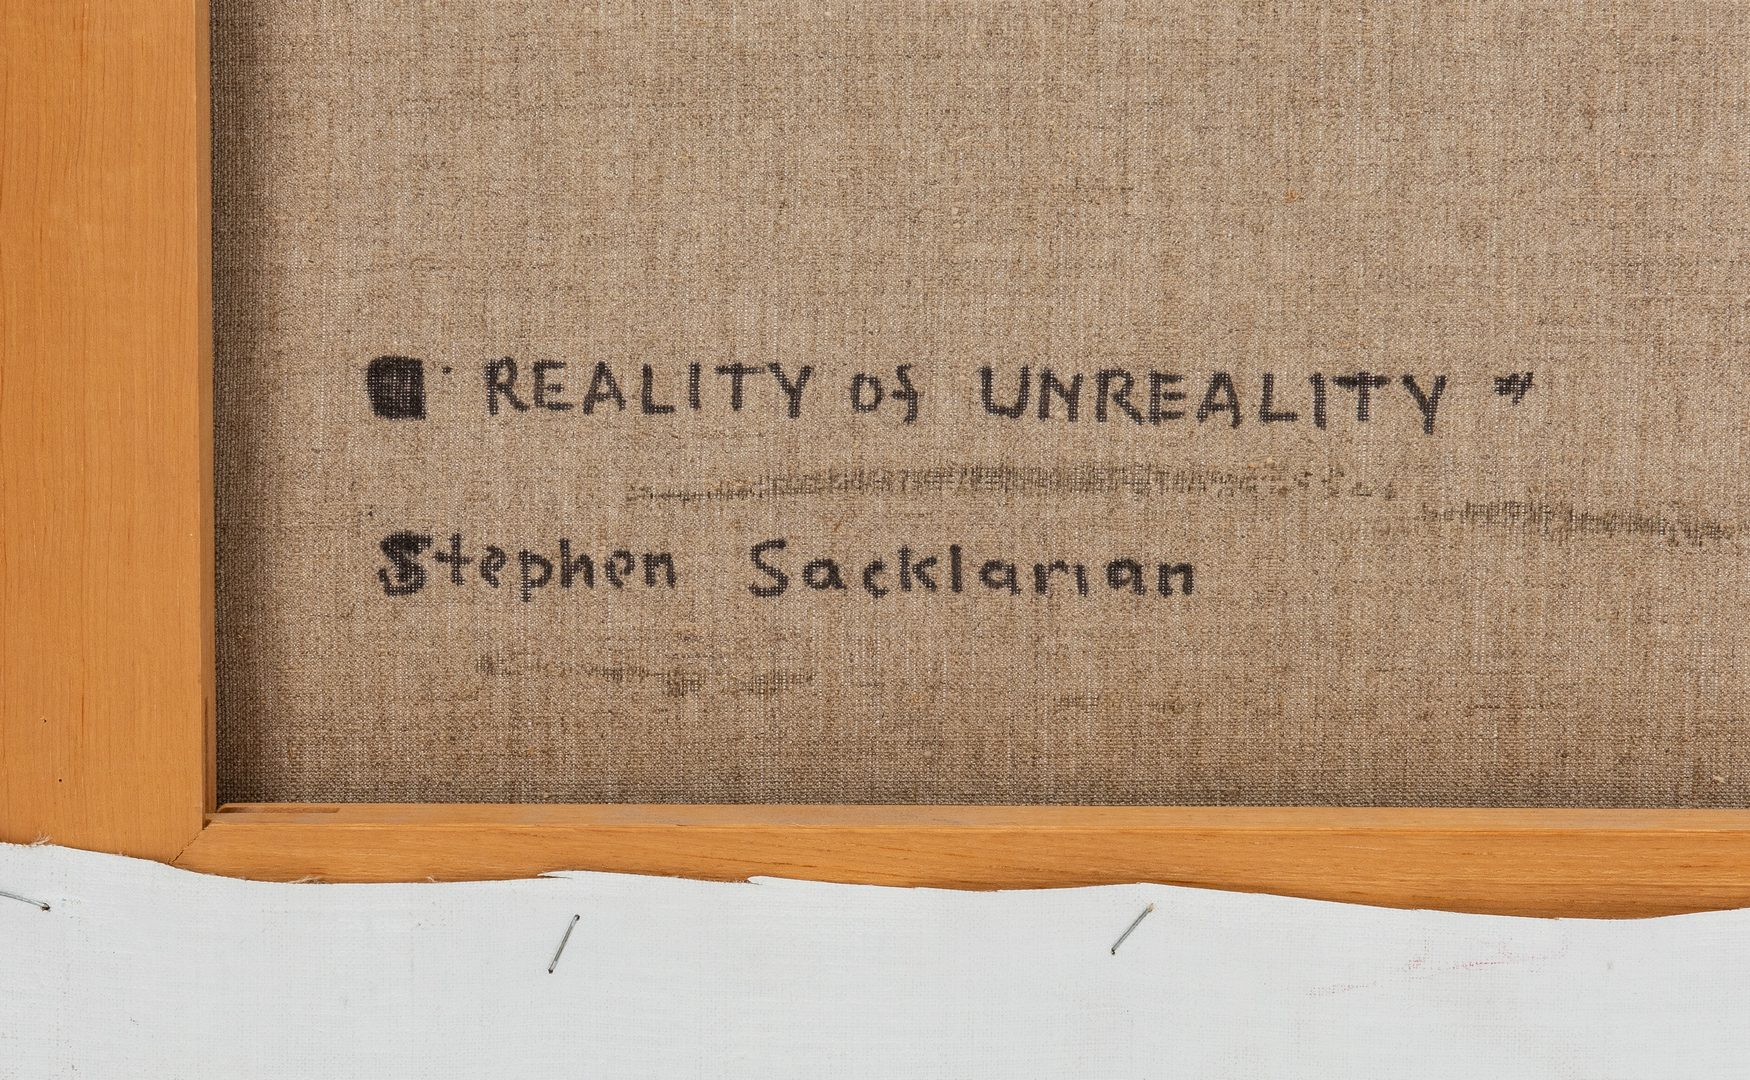 Lot 236: Reality of Unreality (E-2) by Sacklarian